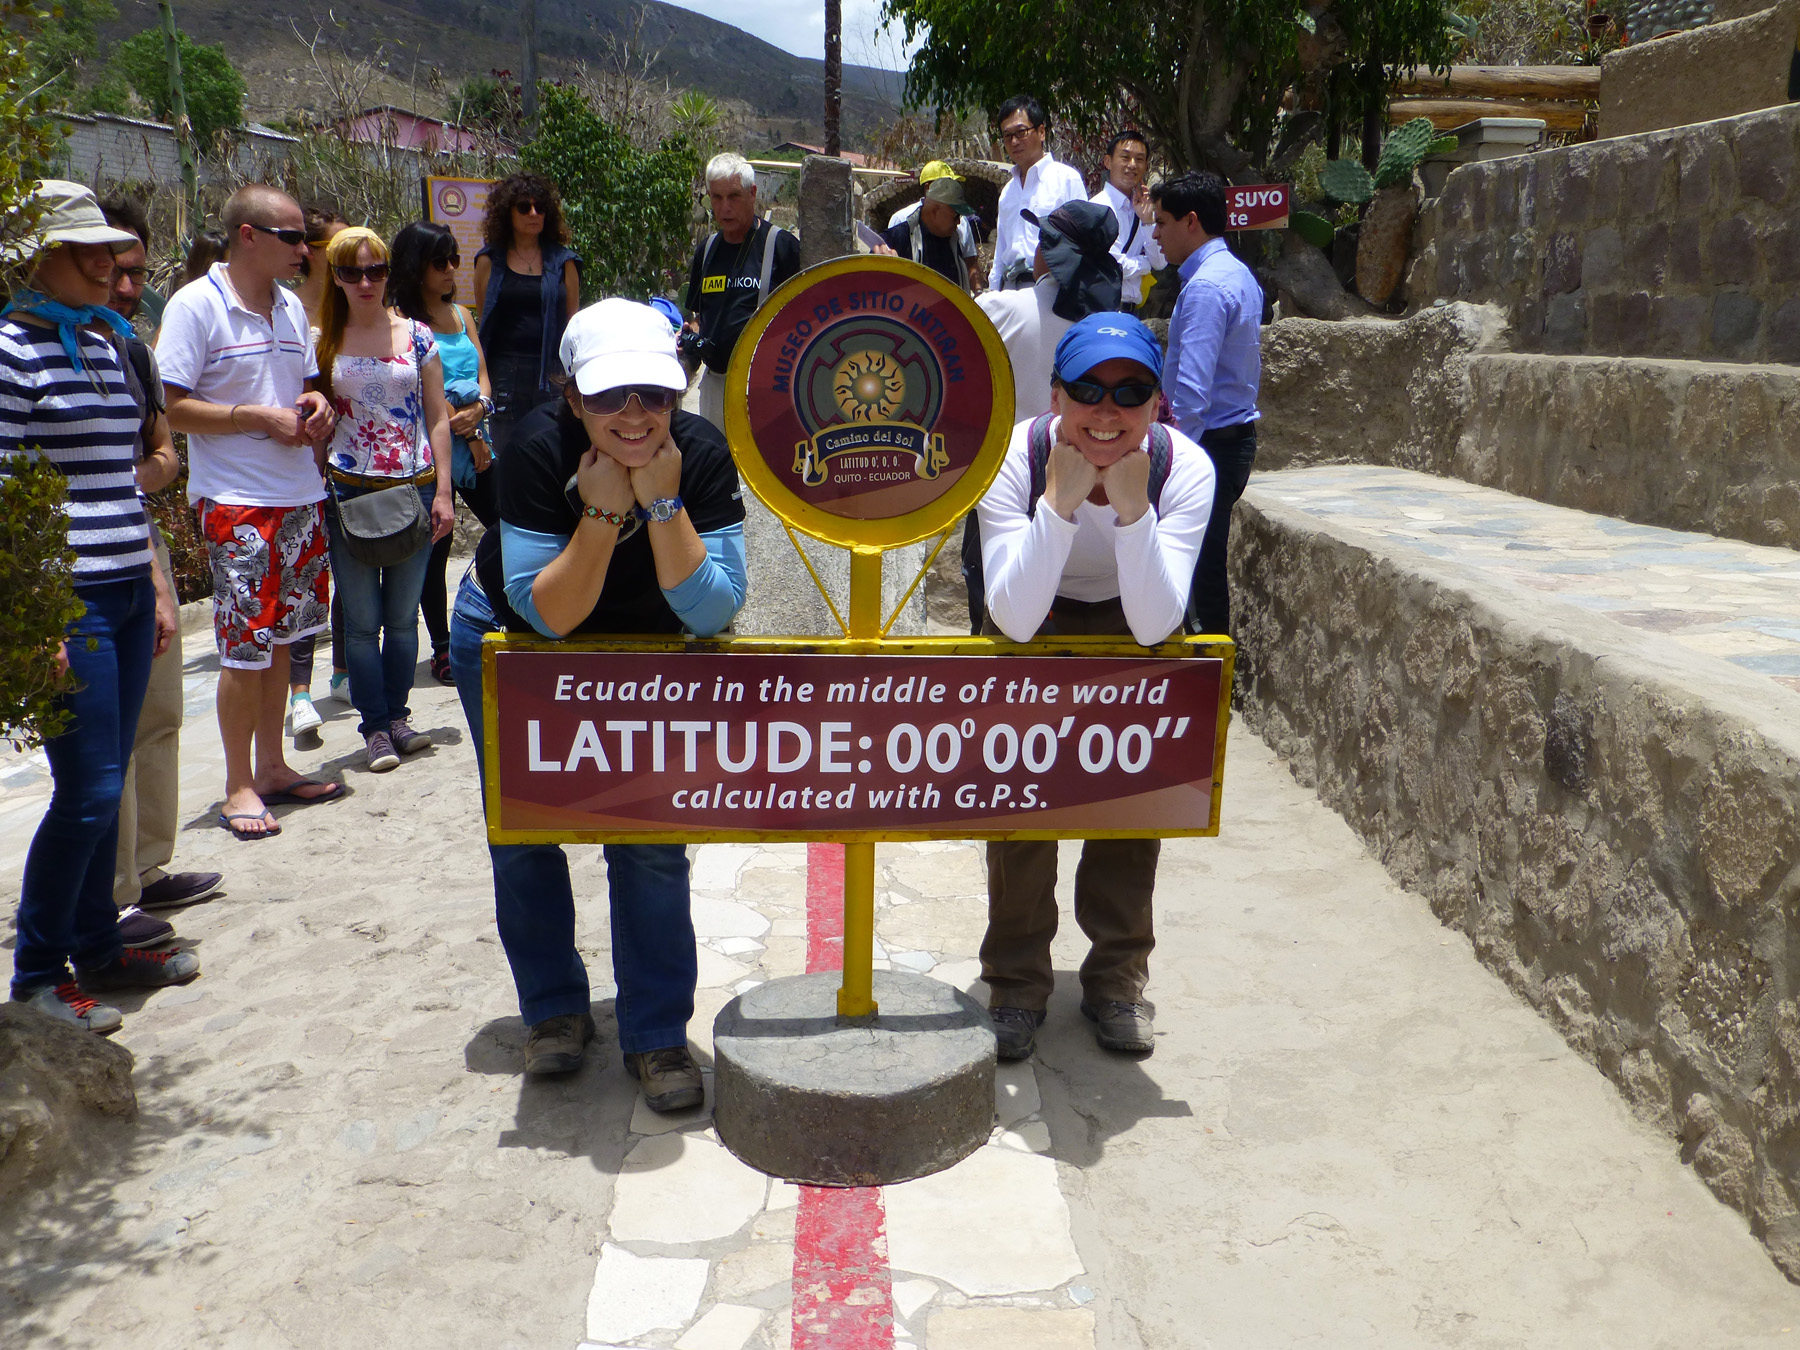 The Real Equator. Look! Katie and I are standing on the actual equator this time!